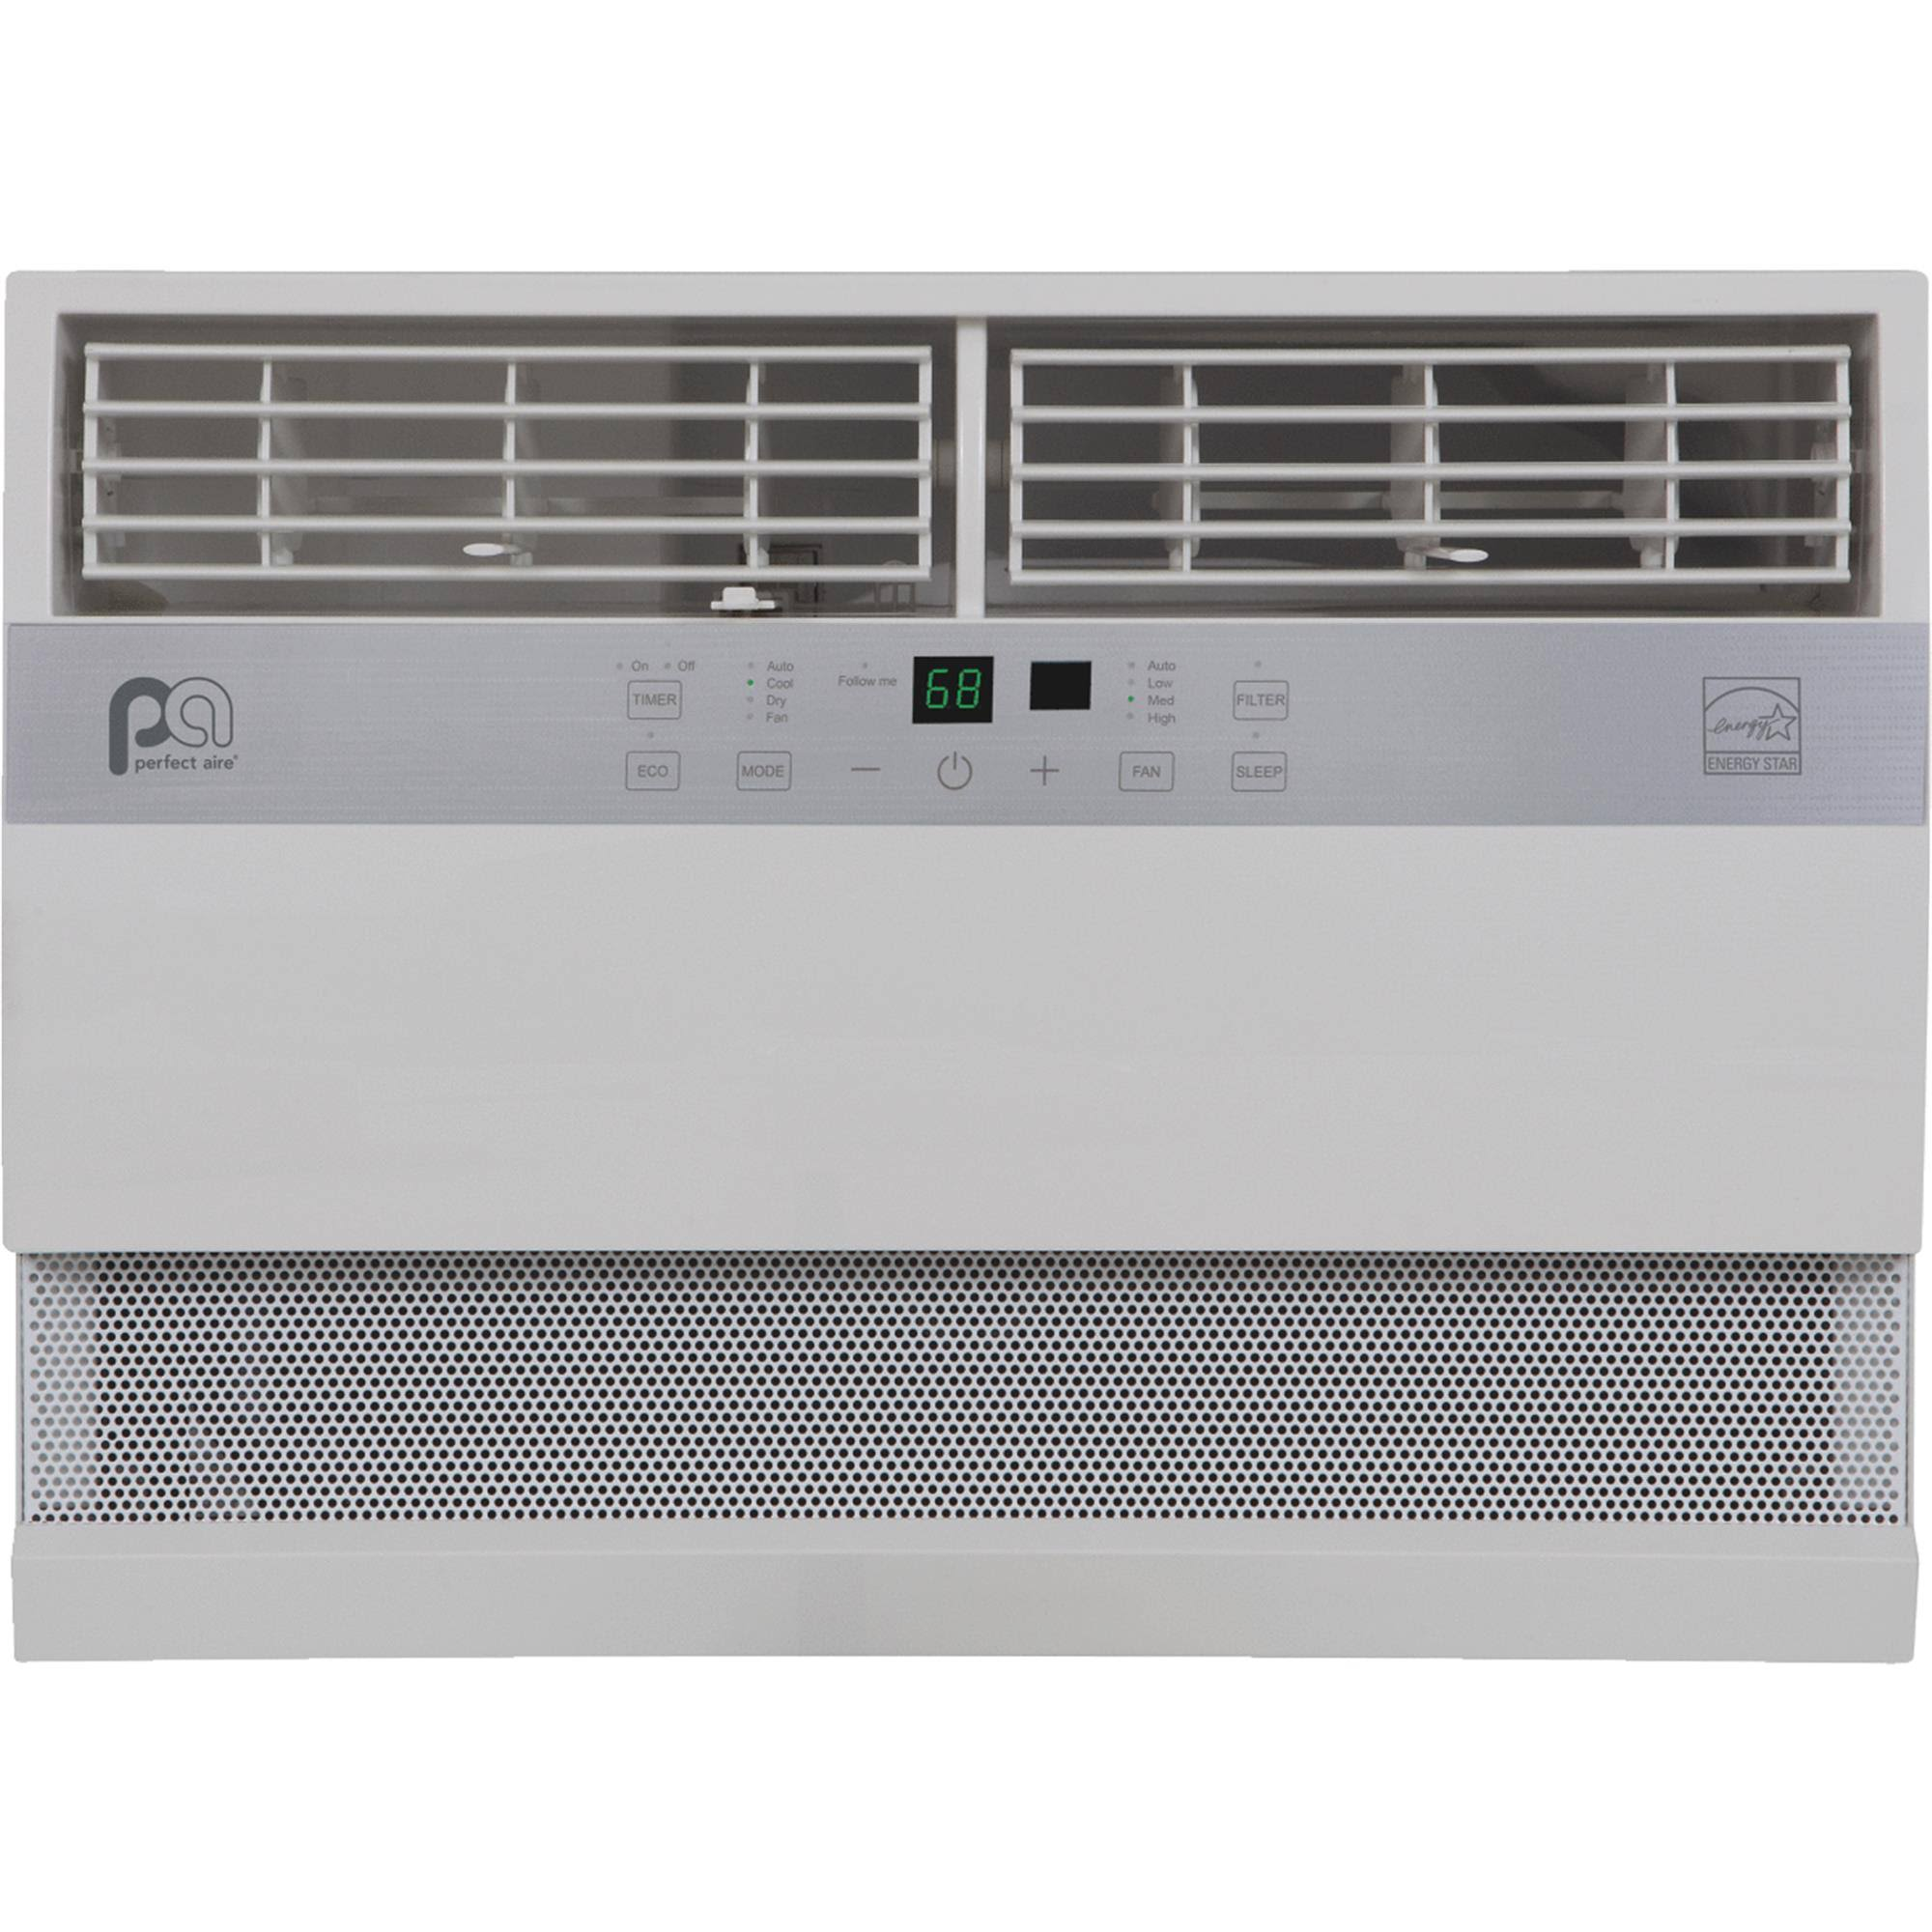 Perfect Aire 10,000 BTU Window Air Conditioner